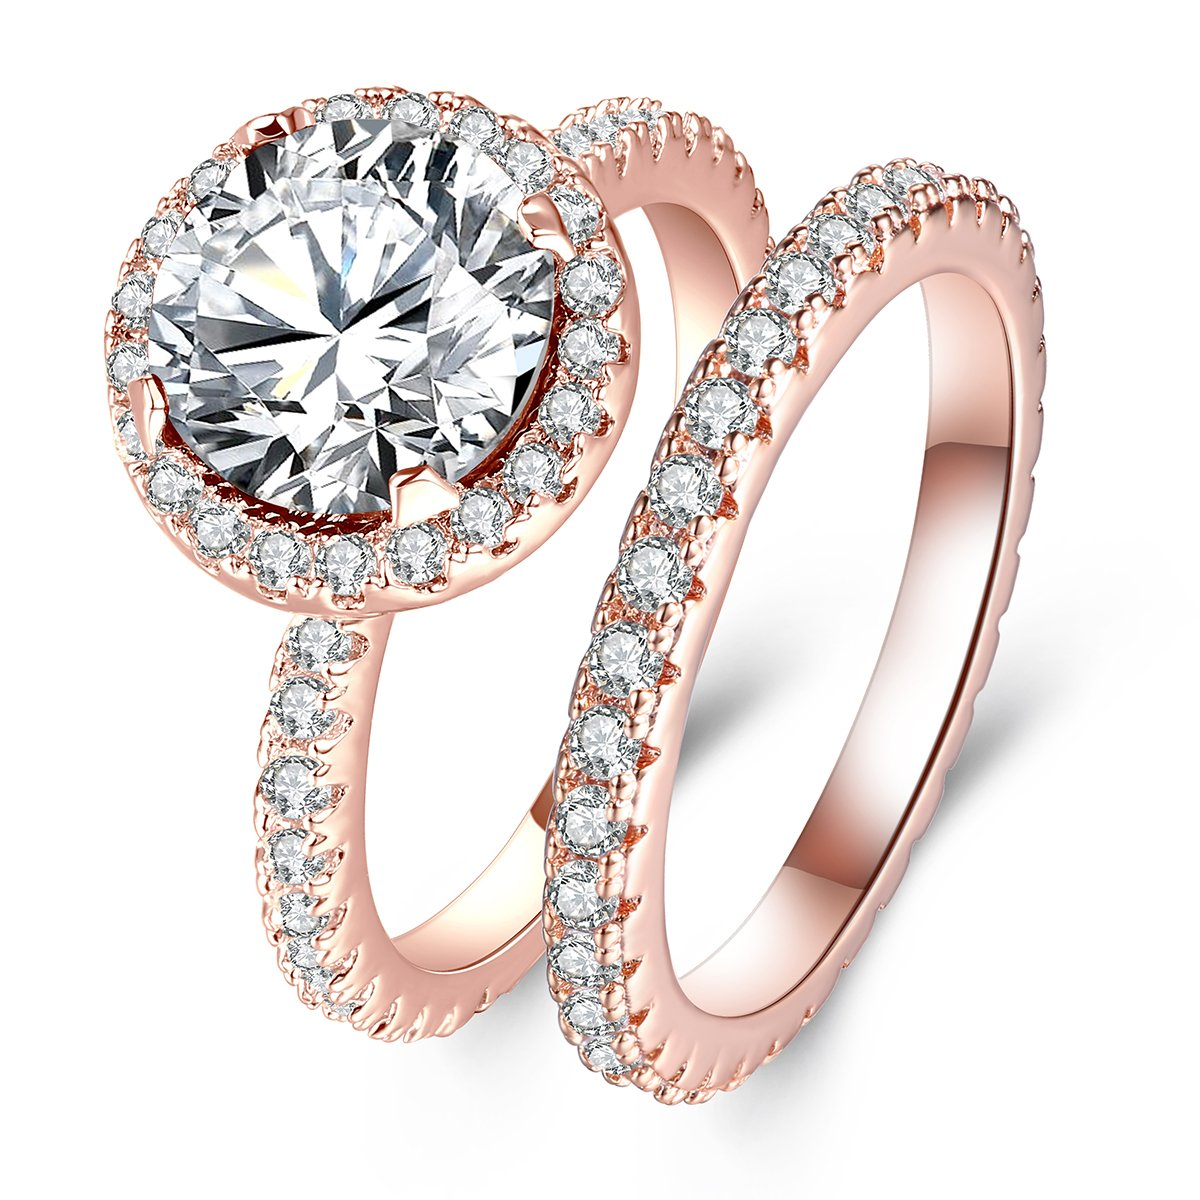 3 Carat Round CZ Solitaire 2 Pieces Ring Set for Women, Halo Style Rose Gold Plated Size 7